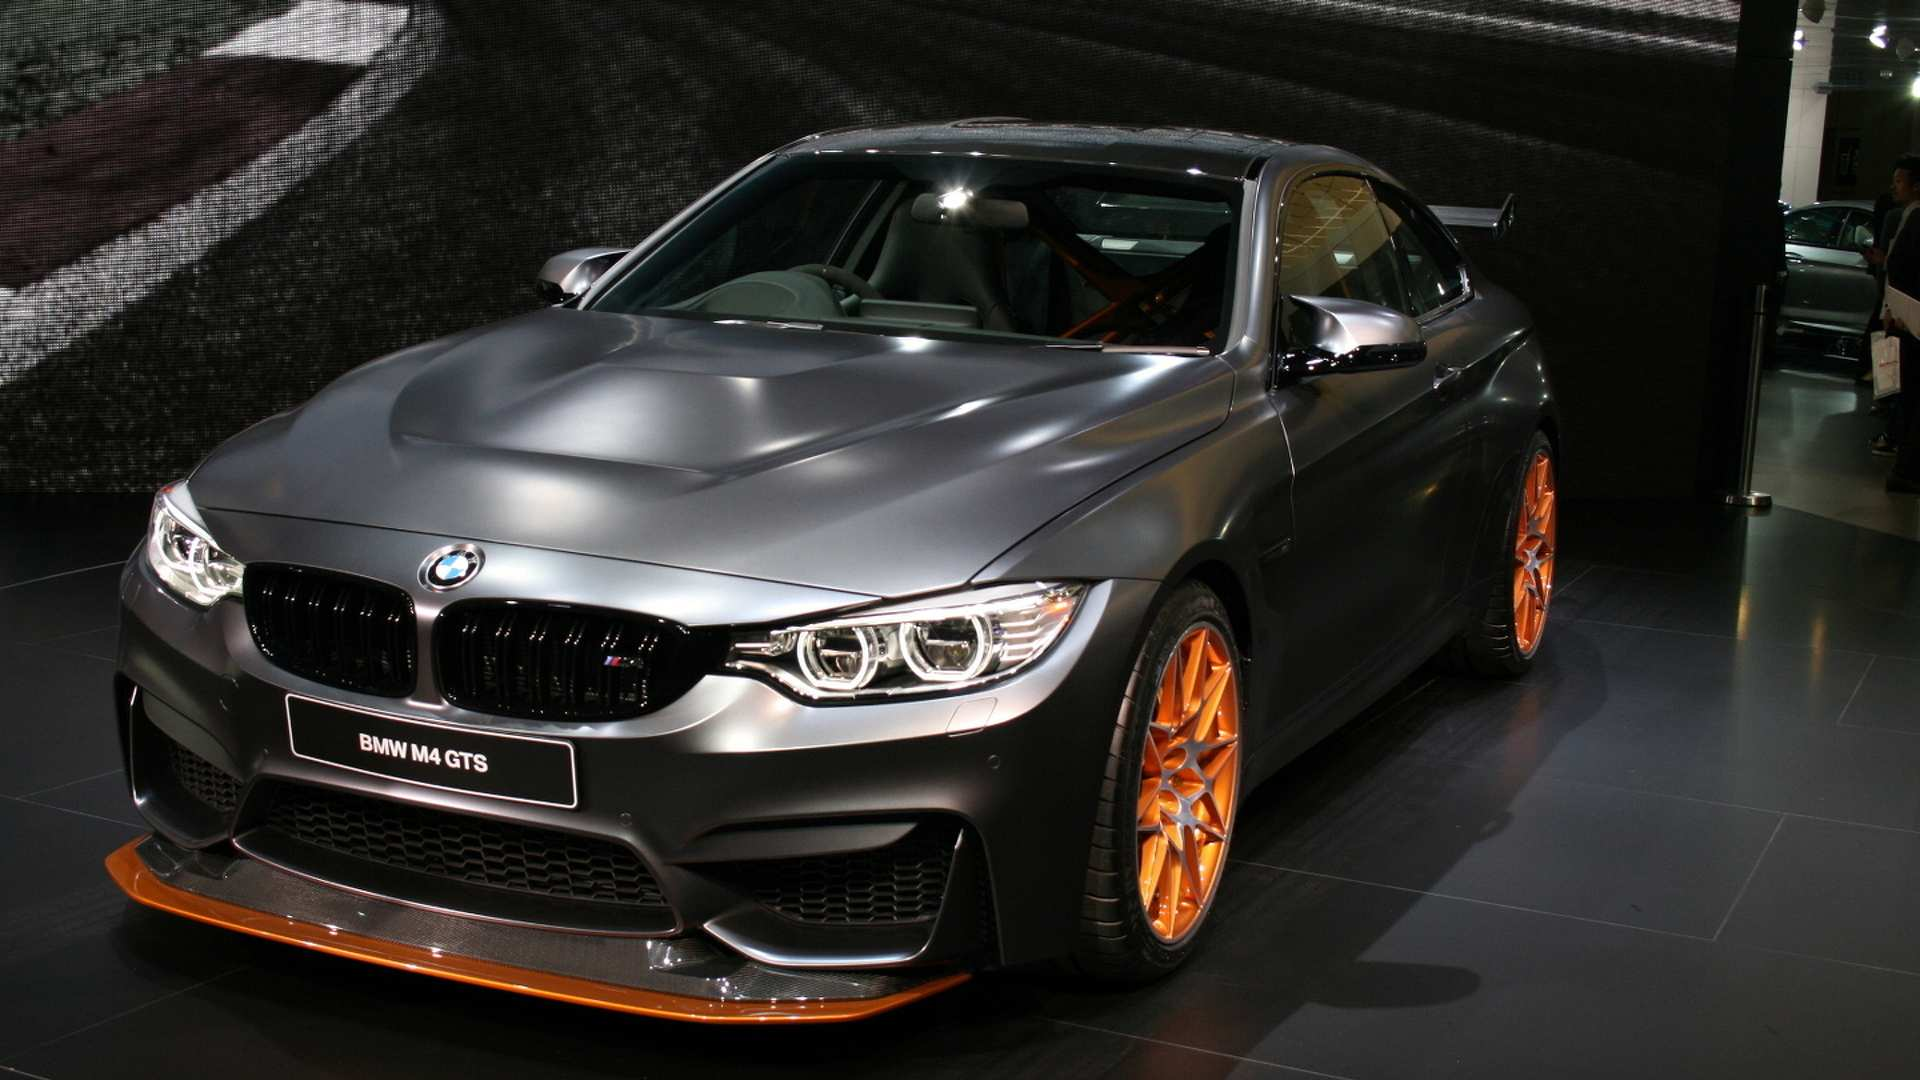 13 Best Review 2020 BMW M4 Gts Specs and Review for 2020 BMW M4 Gts